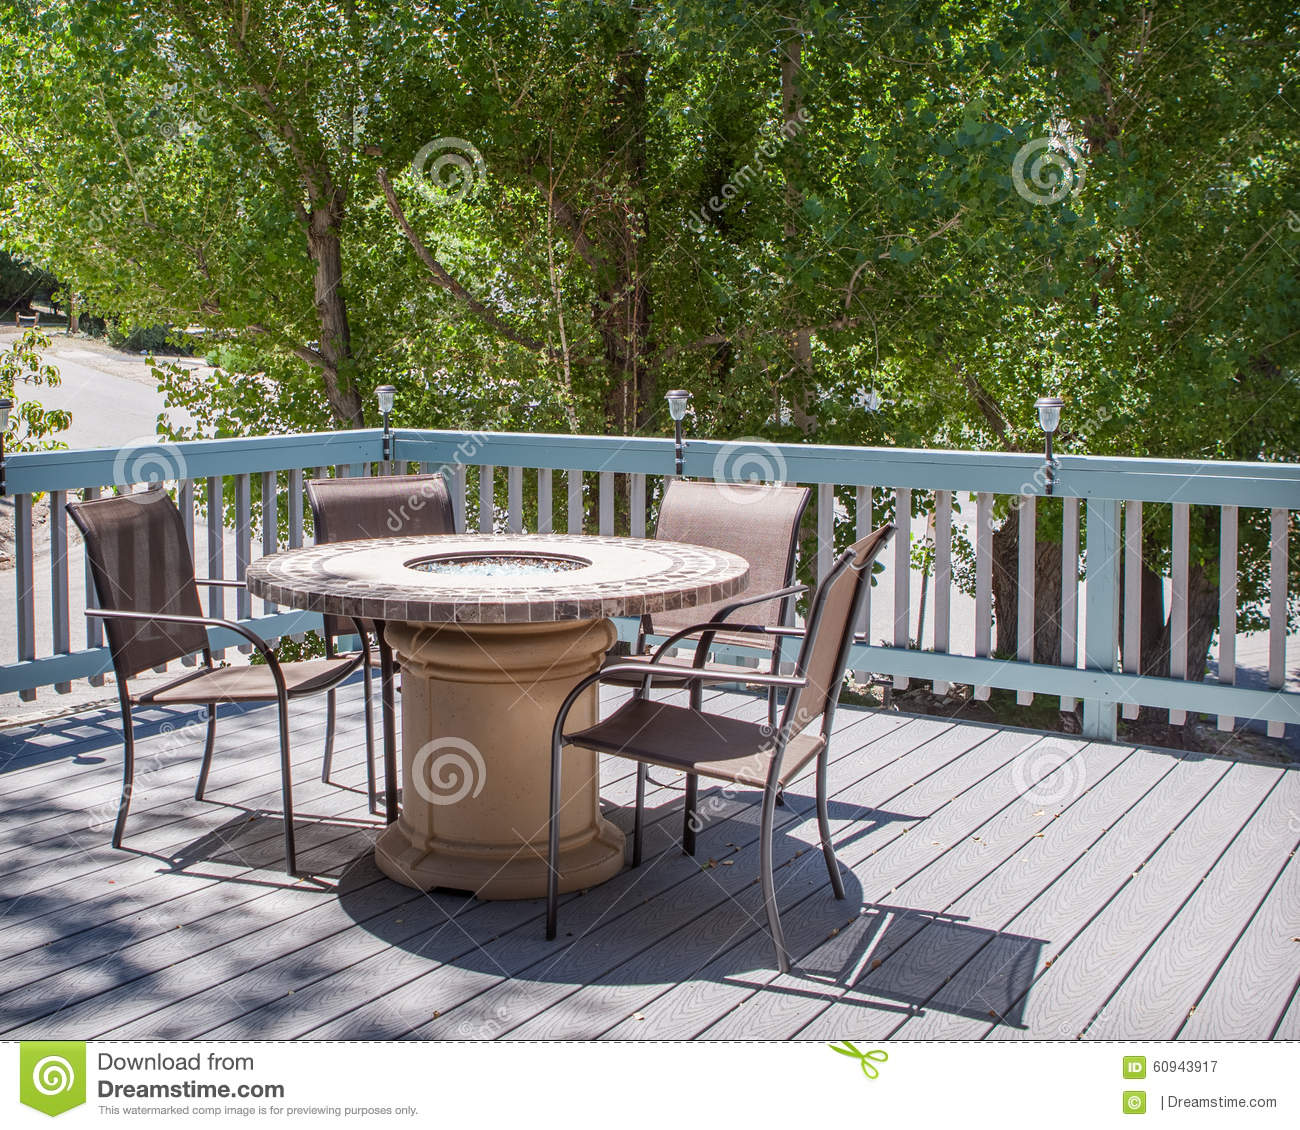 Patio Table With Fire Pit And Chairs On Deck Stock Image Image Of